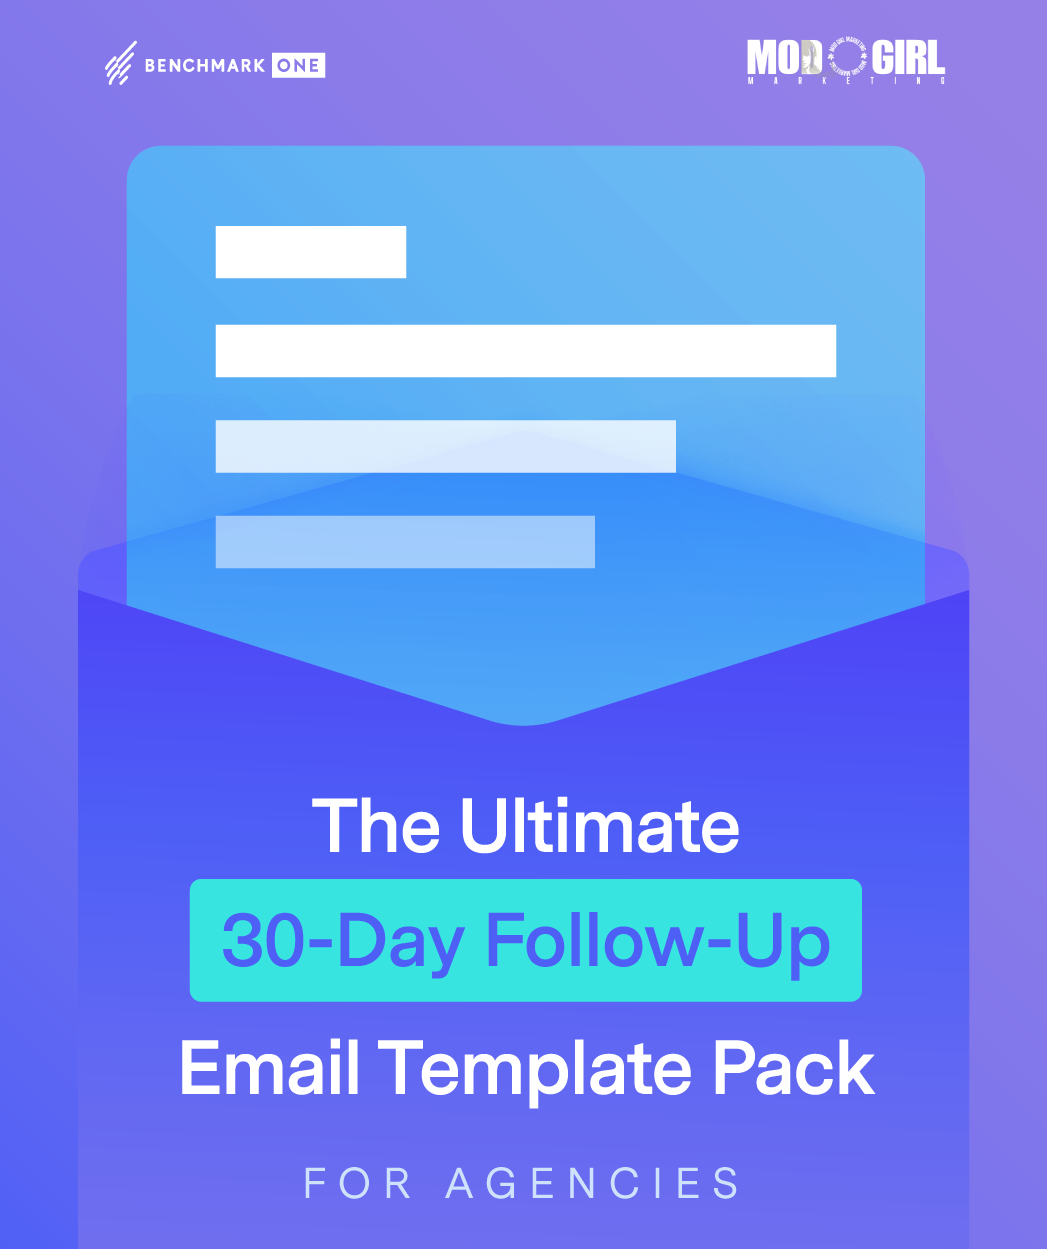 the-ultimate-30-day-follow-up-email-template-pack-for-agencies-COVER